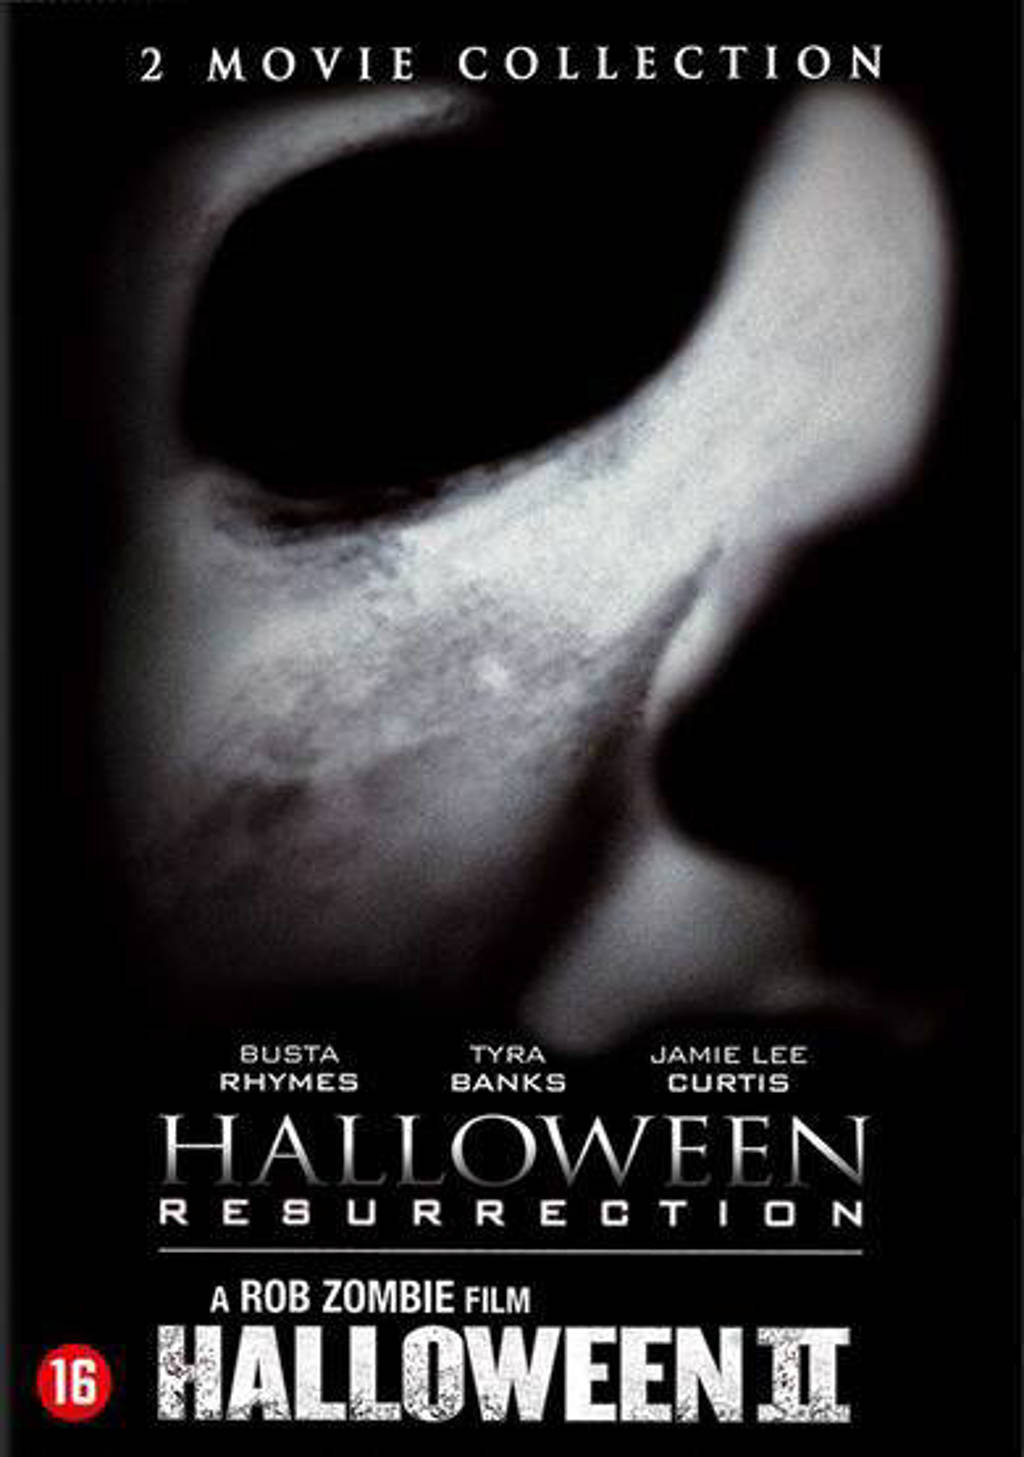 Halloween resurrection/Halloween 2 (DVD)